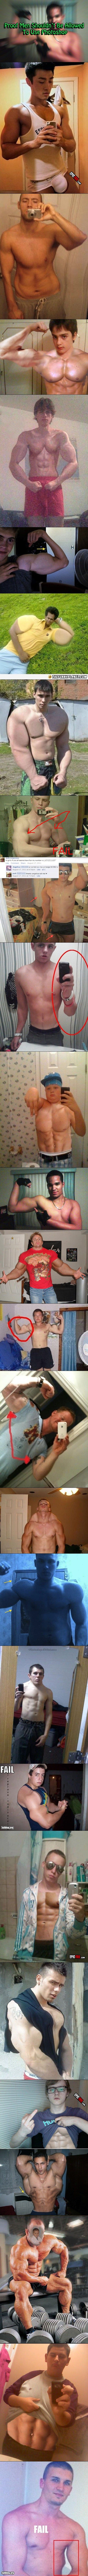 Muscle guys photoshop fails